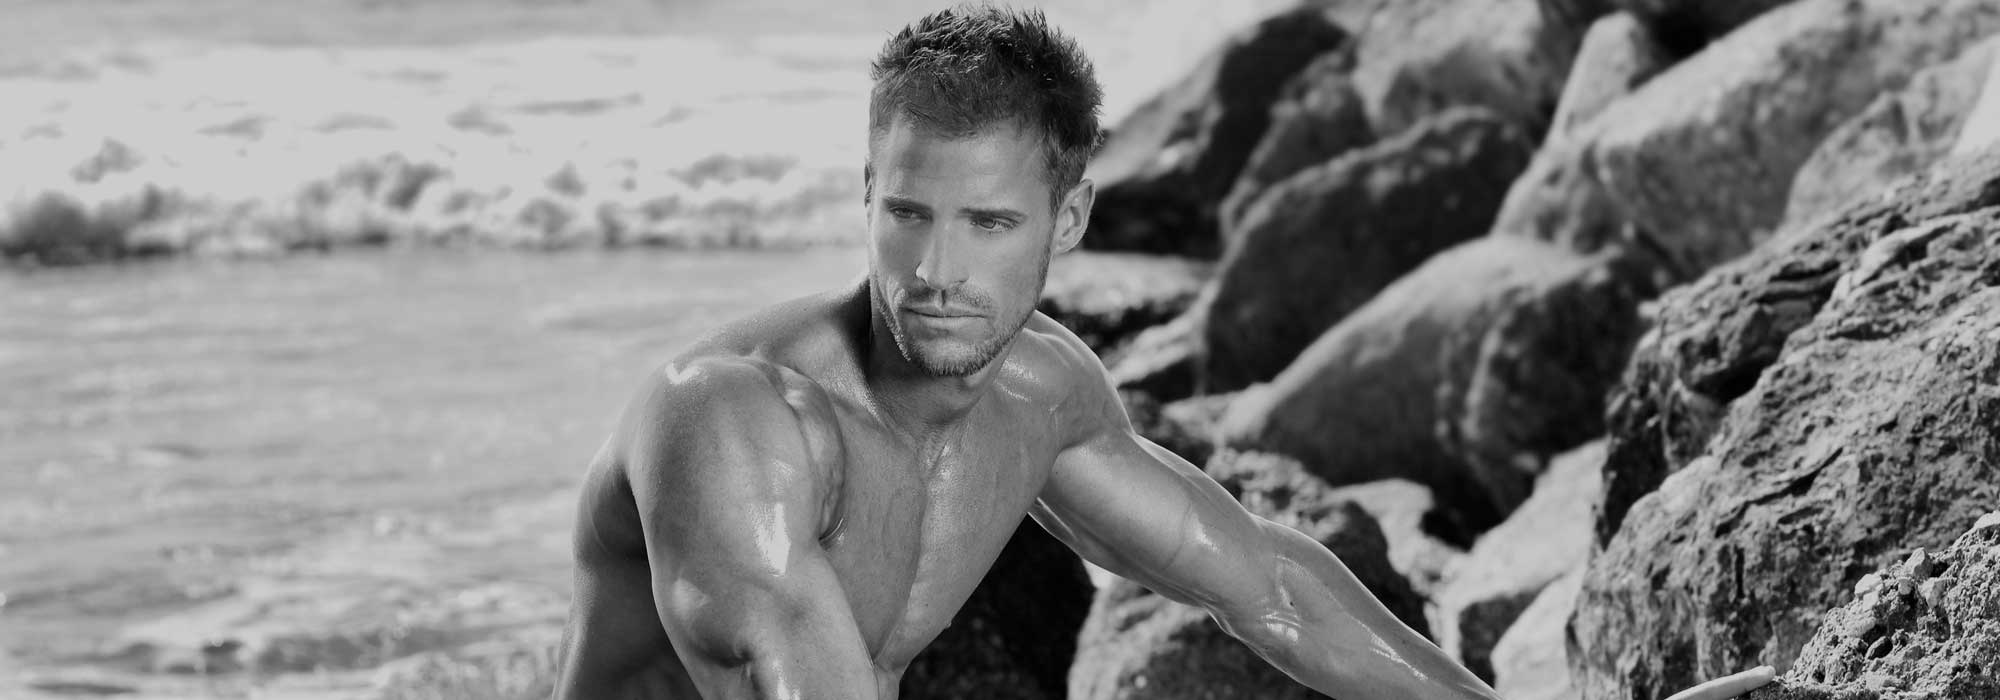 Muscular man at the beach, looking moody, black & white